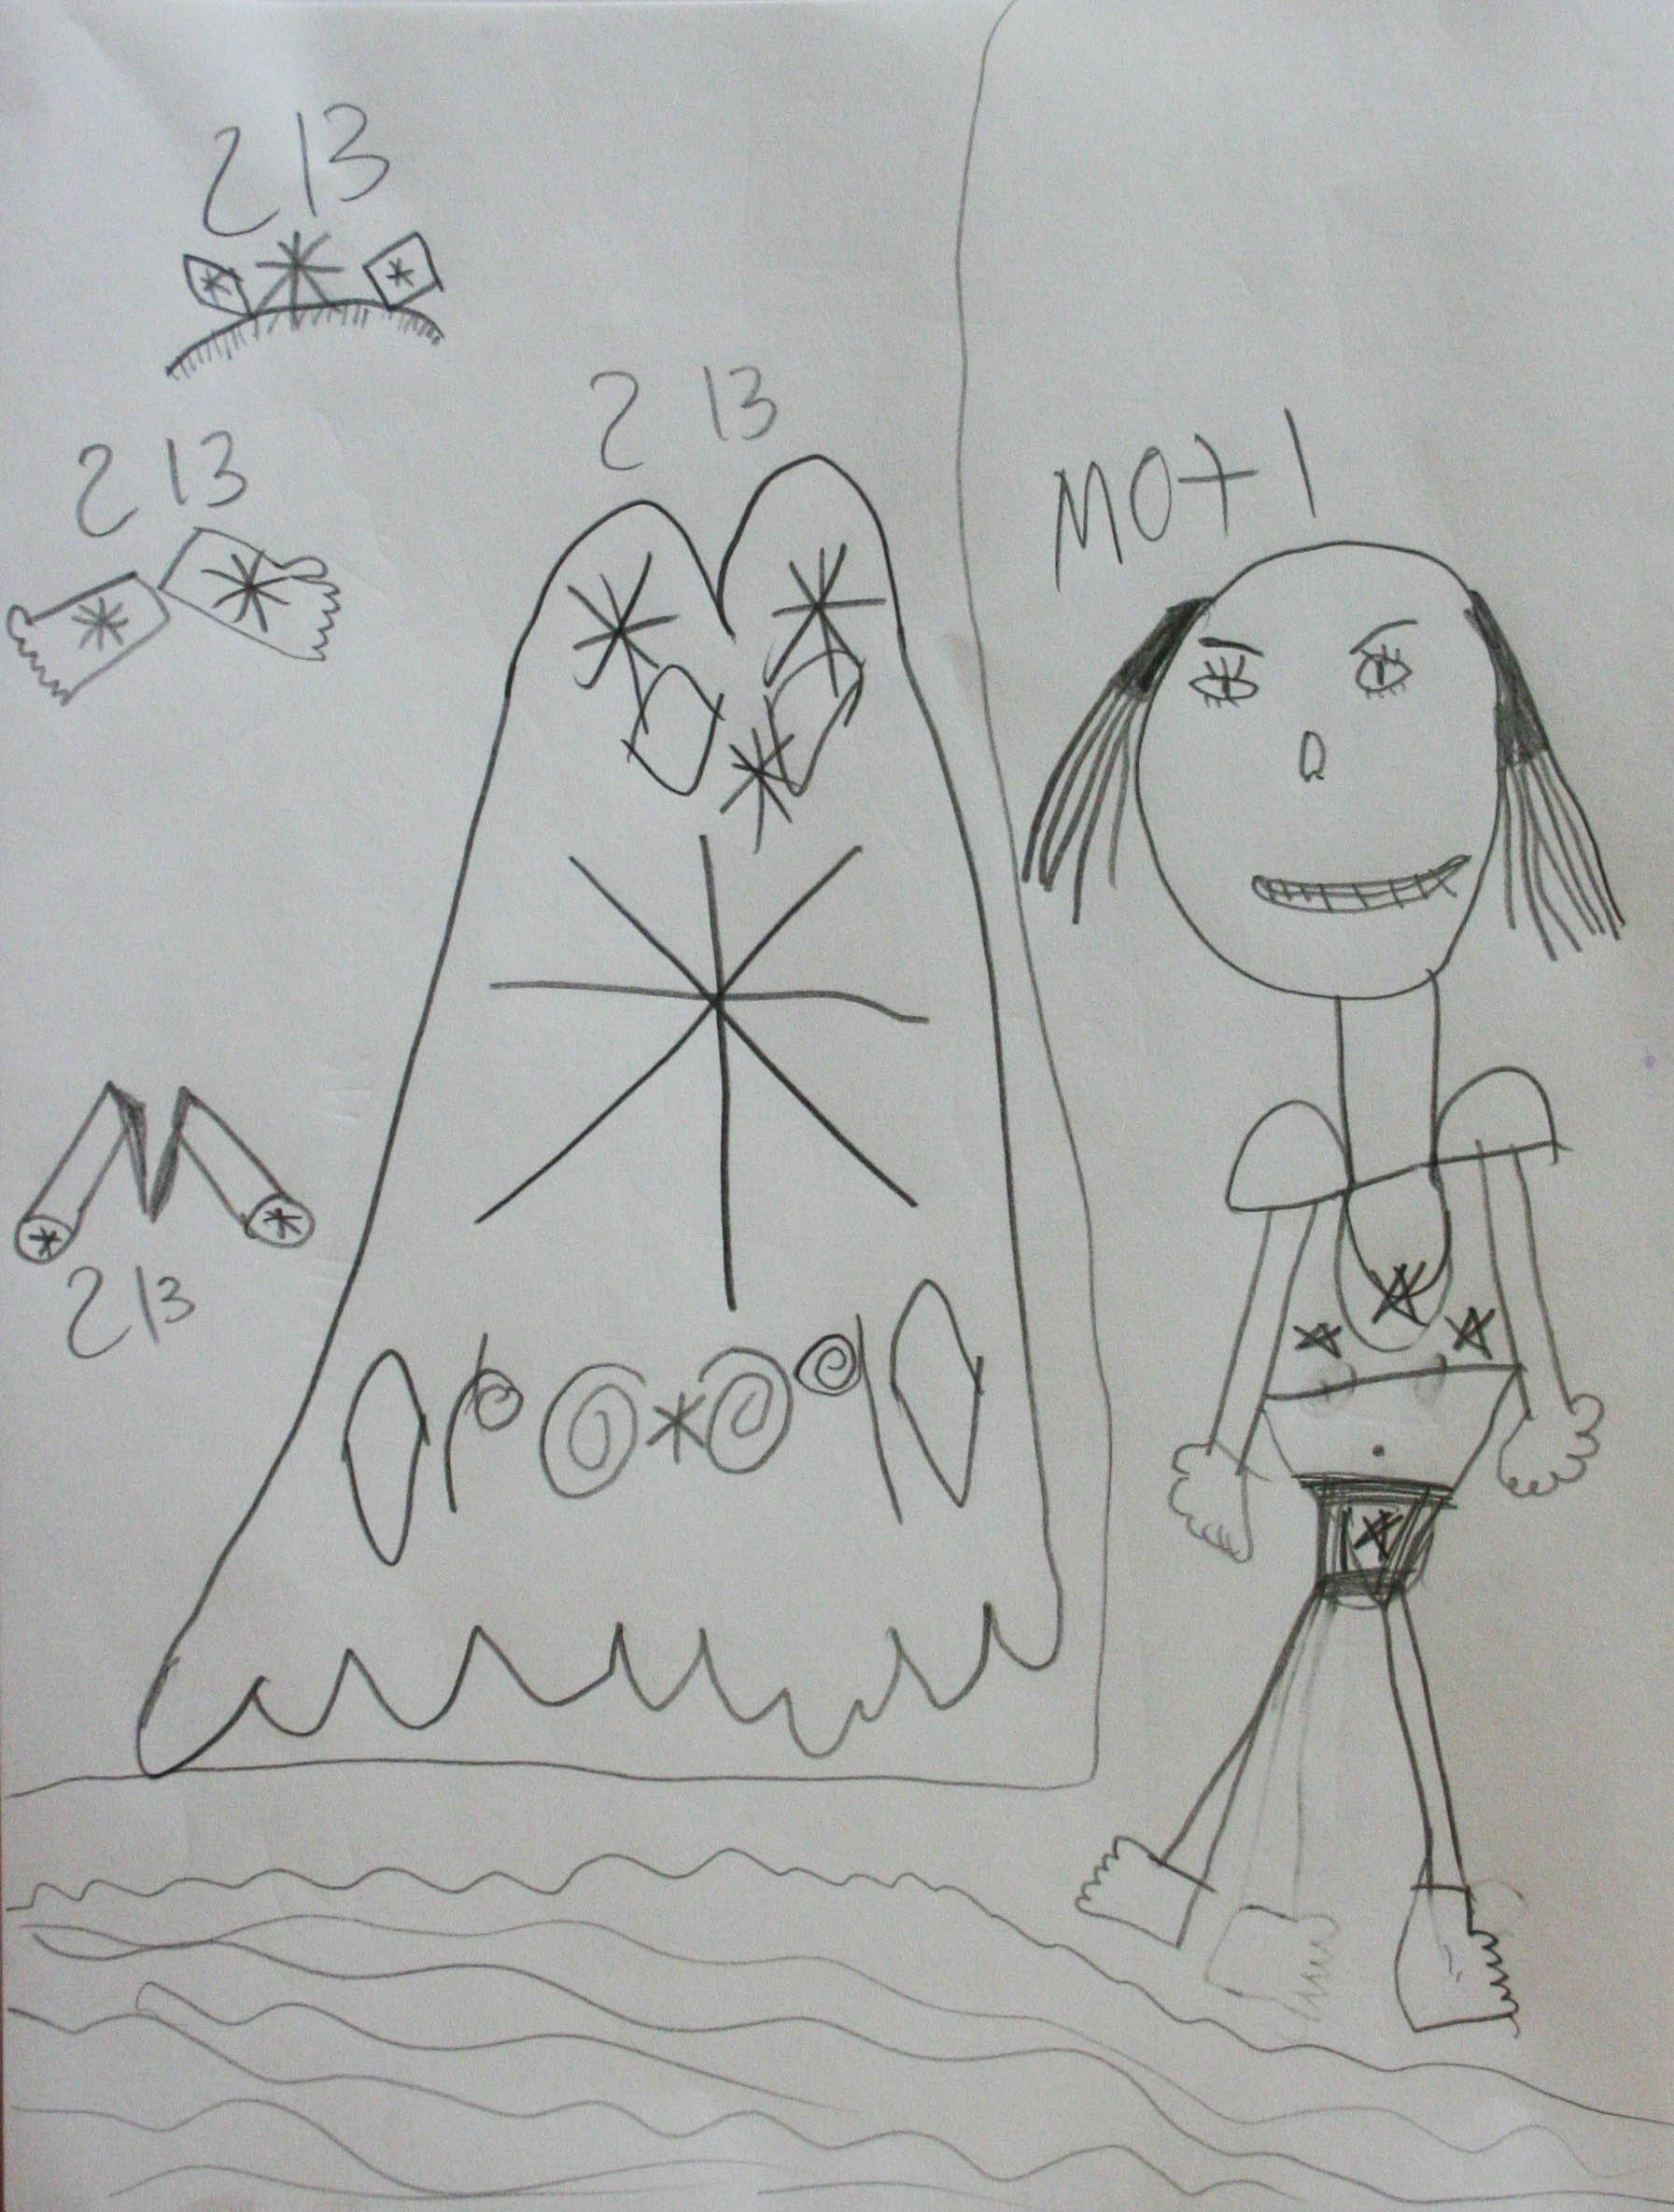 Drawing done by Ava that night.